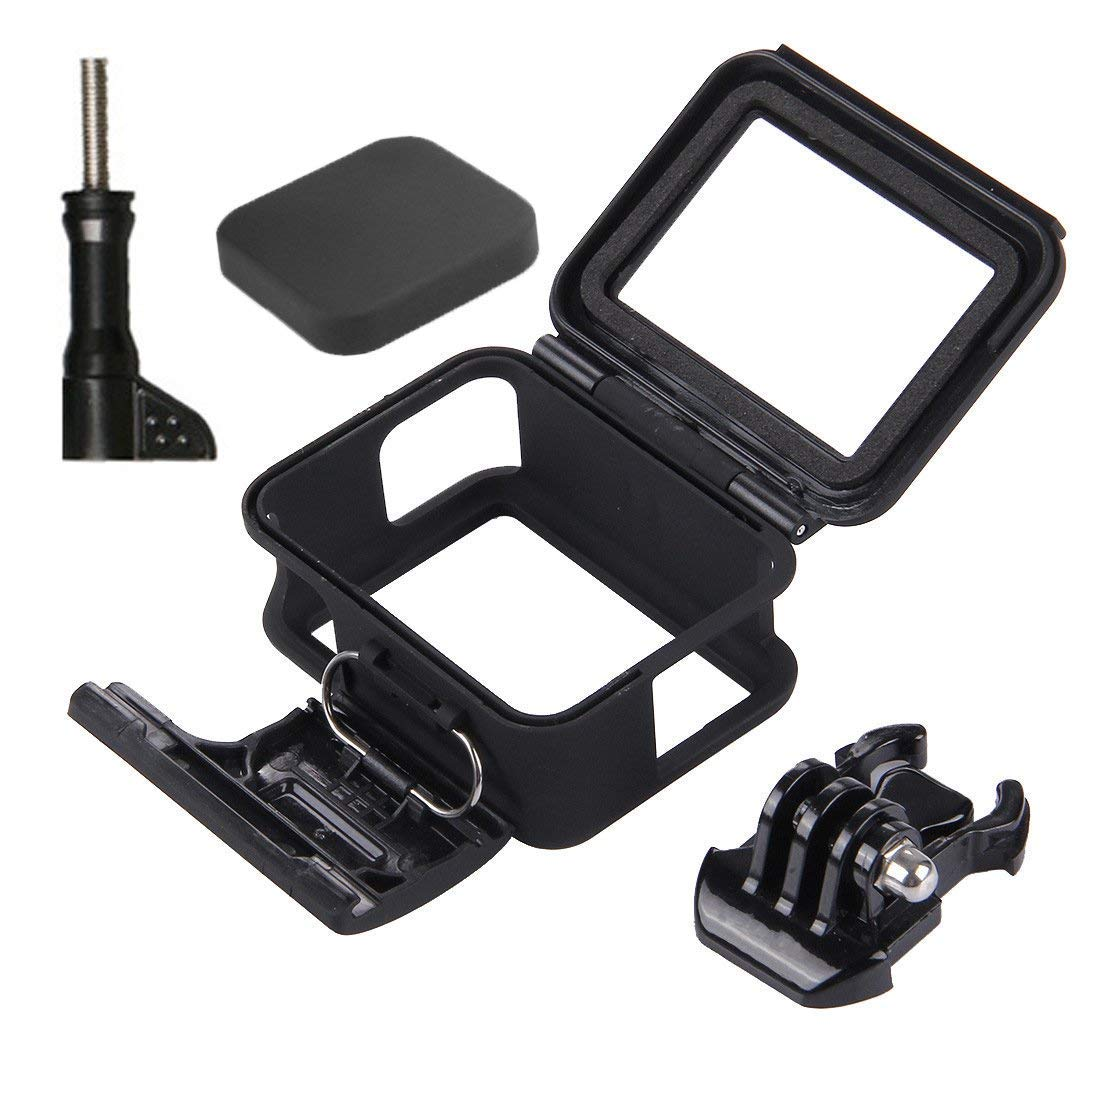 TOOGOO Frame Open Ca Lens Protective Cover Accessories Kit for Gopro Hero 5/6 by TOOGOO (Image #5)